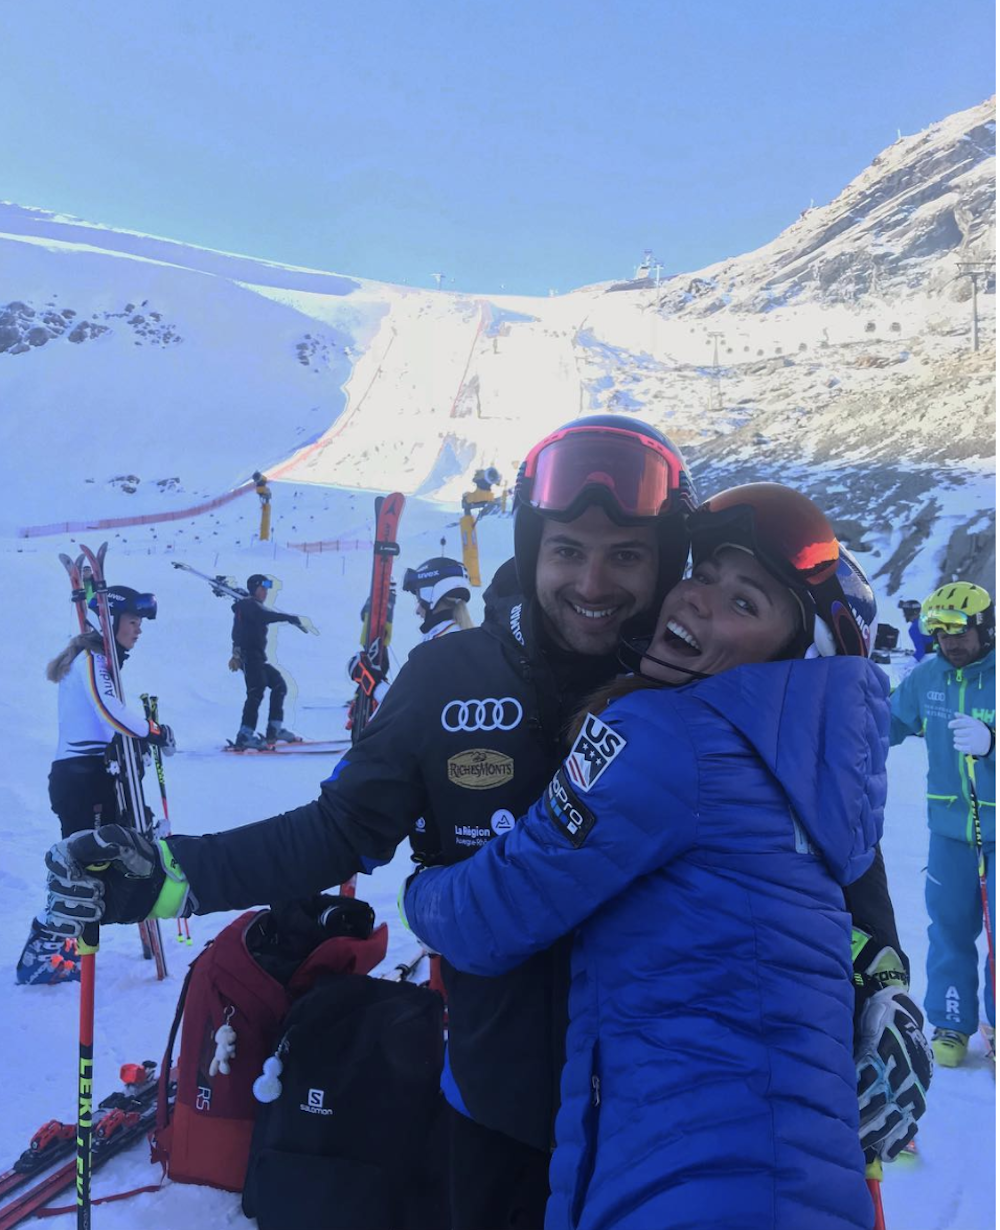 Who is Mikaela Shiffrin dating? Meet her long-distance boyfriend